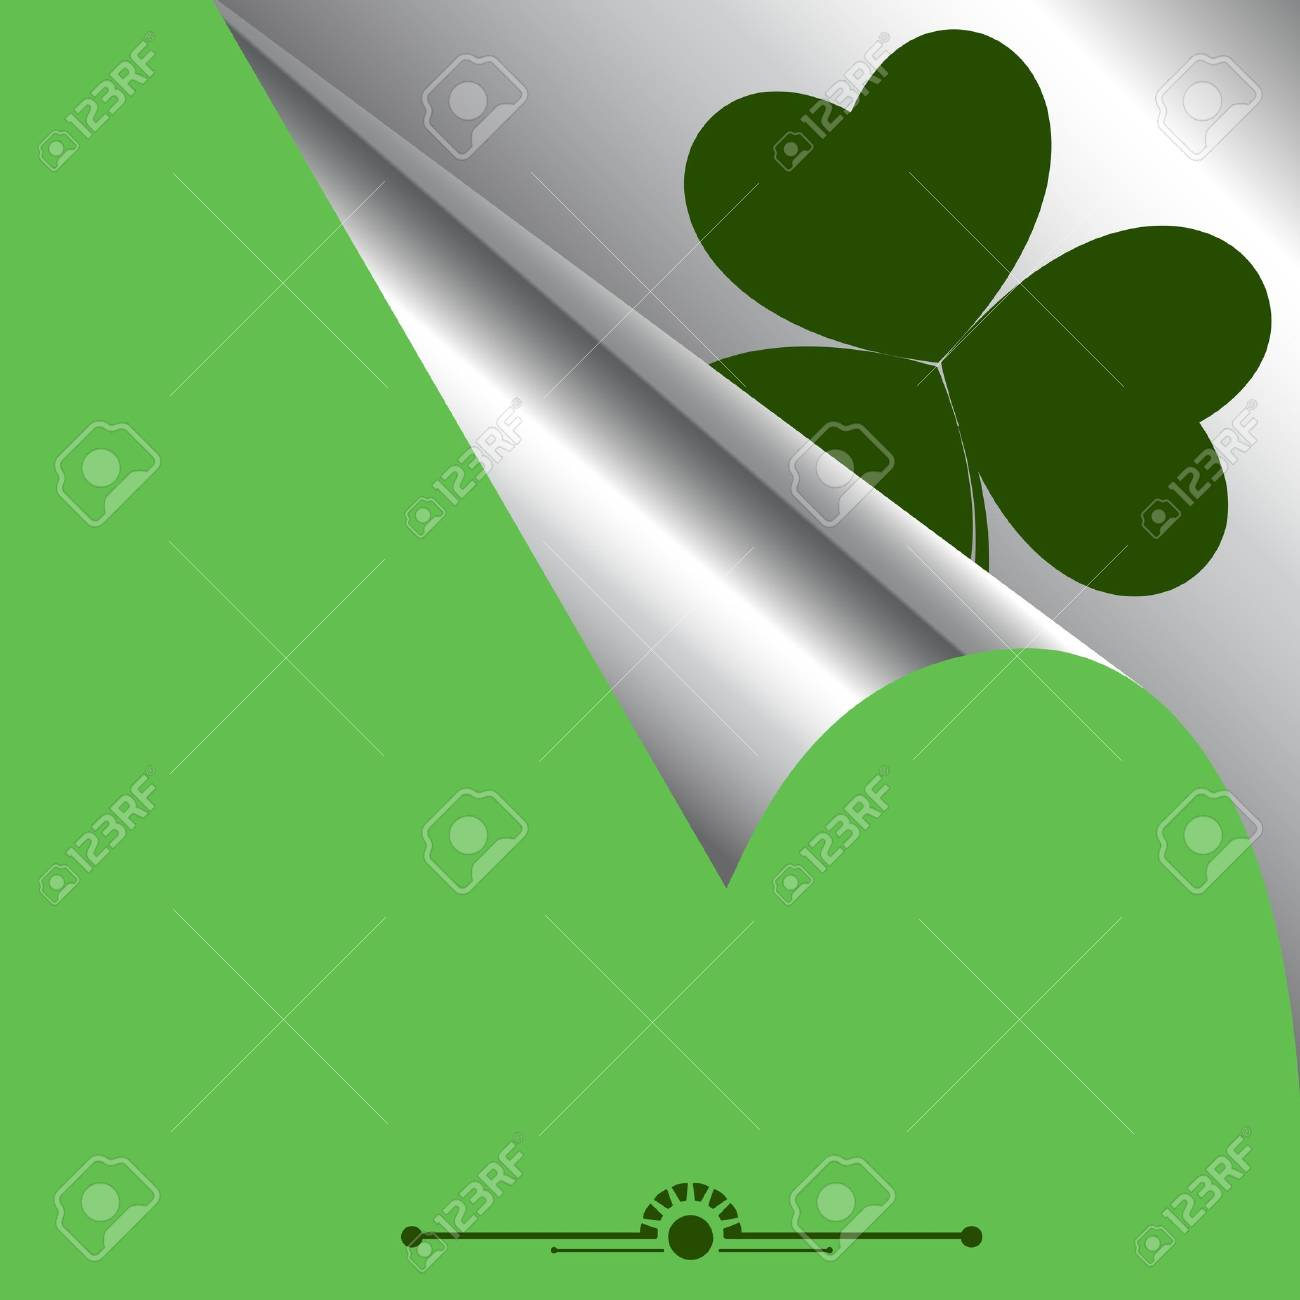 Curled Paper with Shamrock Background Stock Vector - 12654445